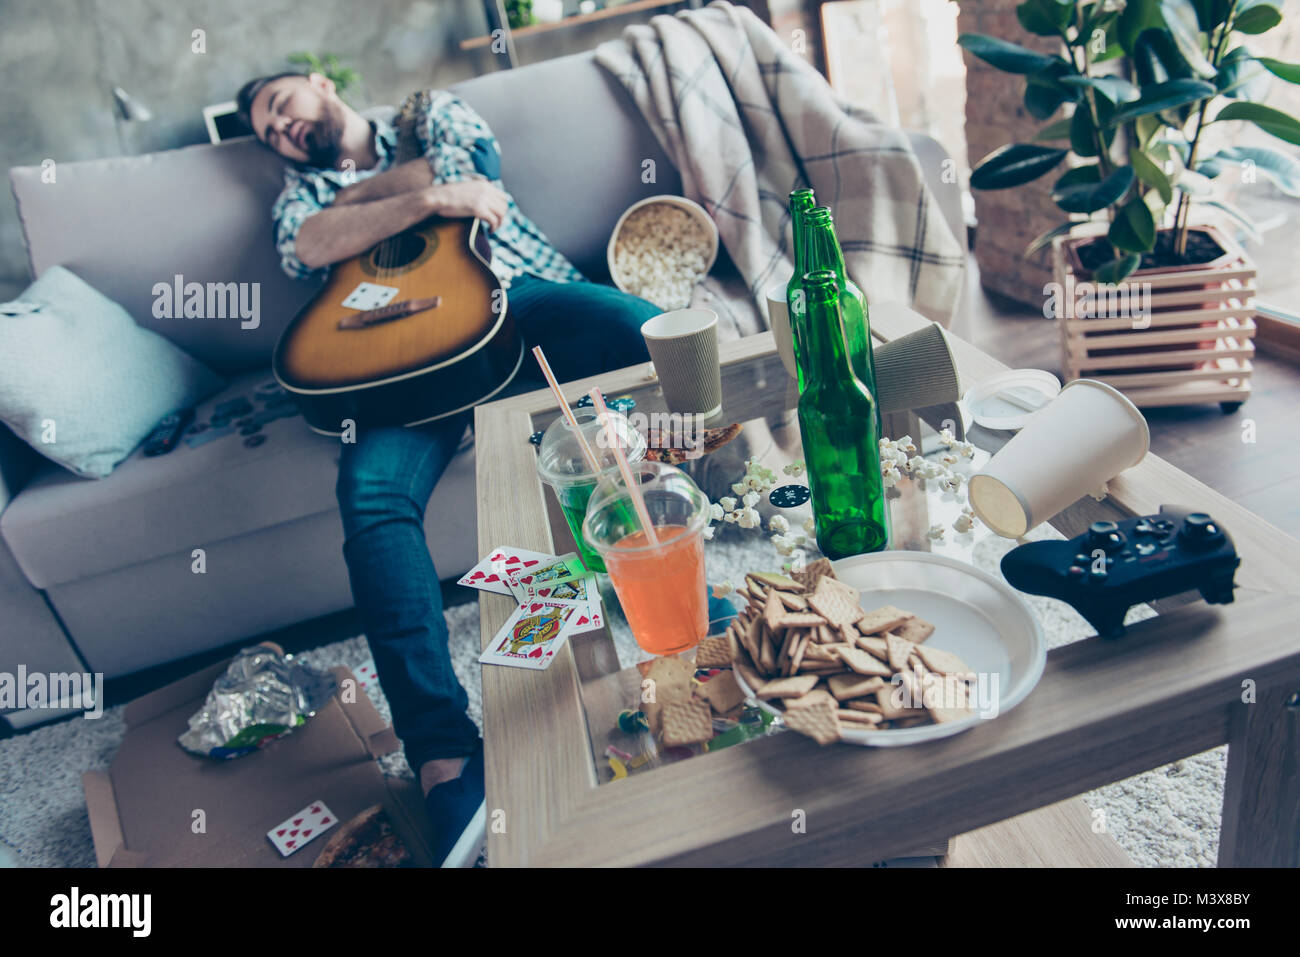 After party morning, bachelorette party. Drunk hipster embracing an acoustic guitar is sleeping on a sofa in messy - Stock Image